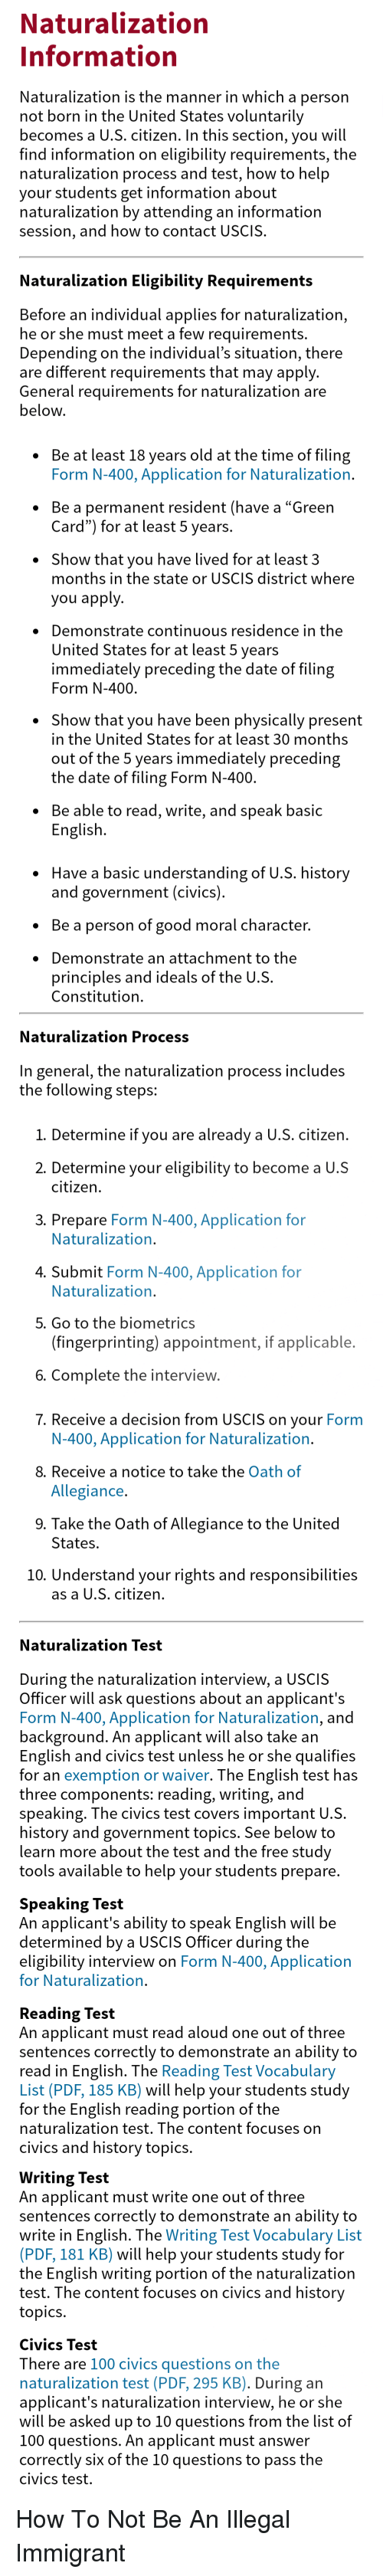 where can you get a citizen card application form